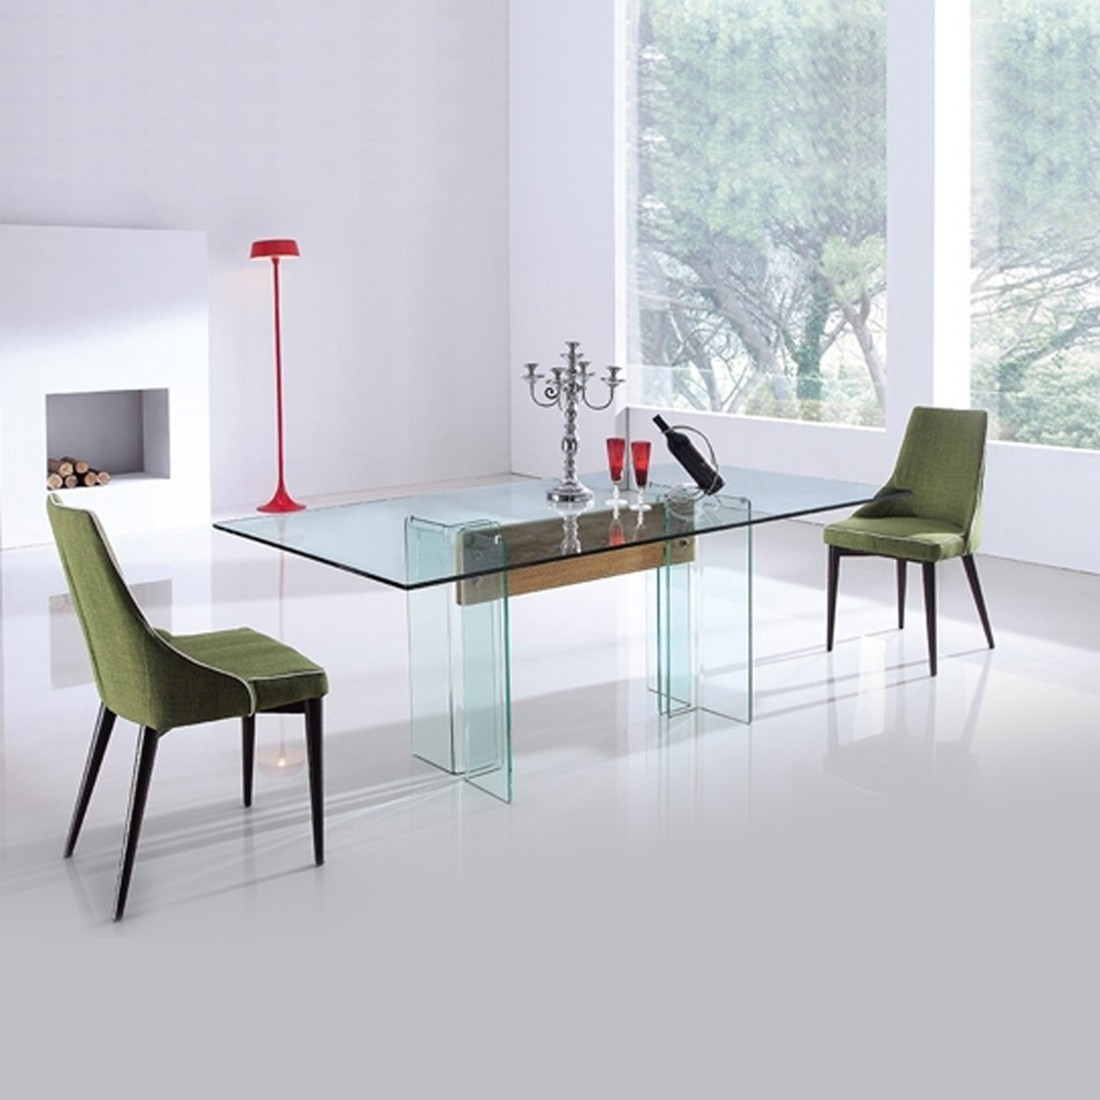 Table manger en verre et bois design glasswood for Table extensible verre et bois